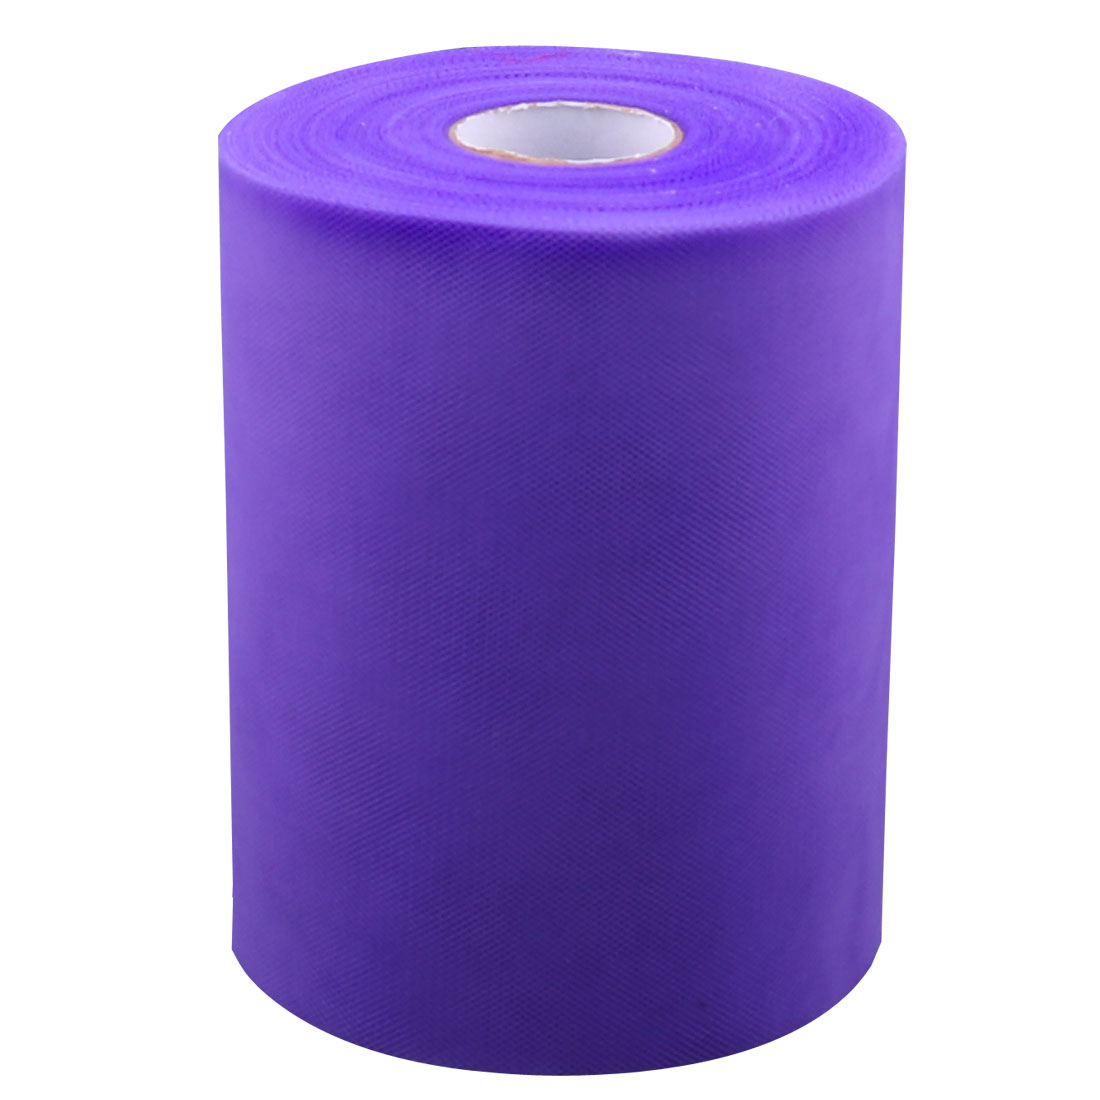 Banquet Wedding Party DIY Tutu Gift Tulle Roll Spool Decor Dark Purple 100 Yards